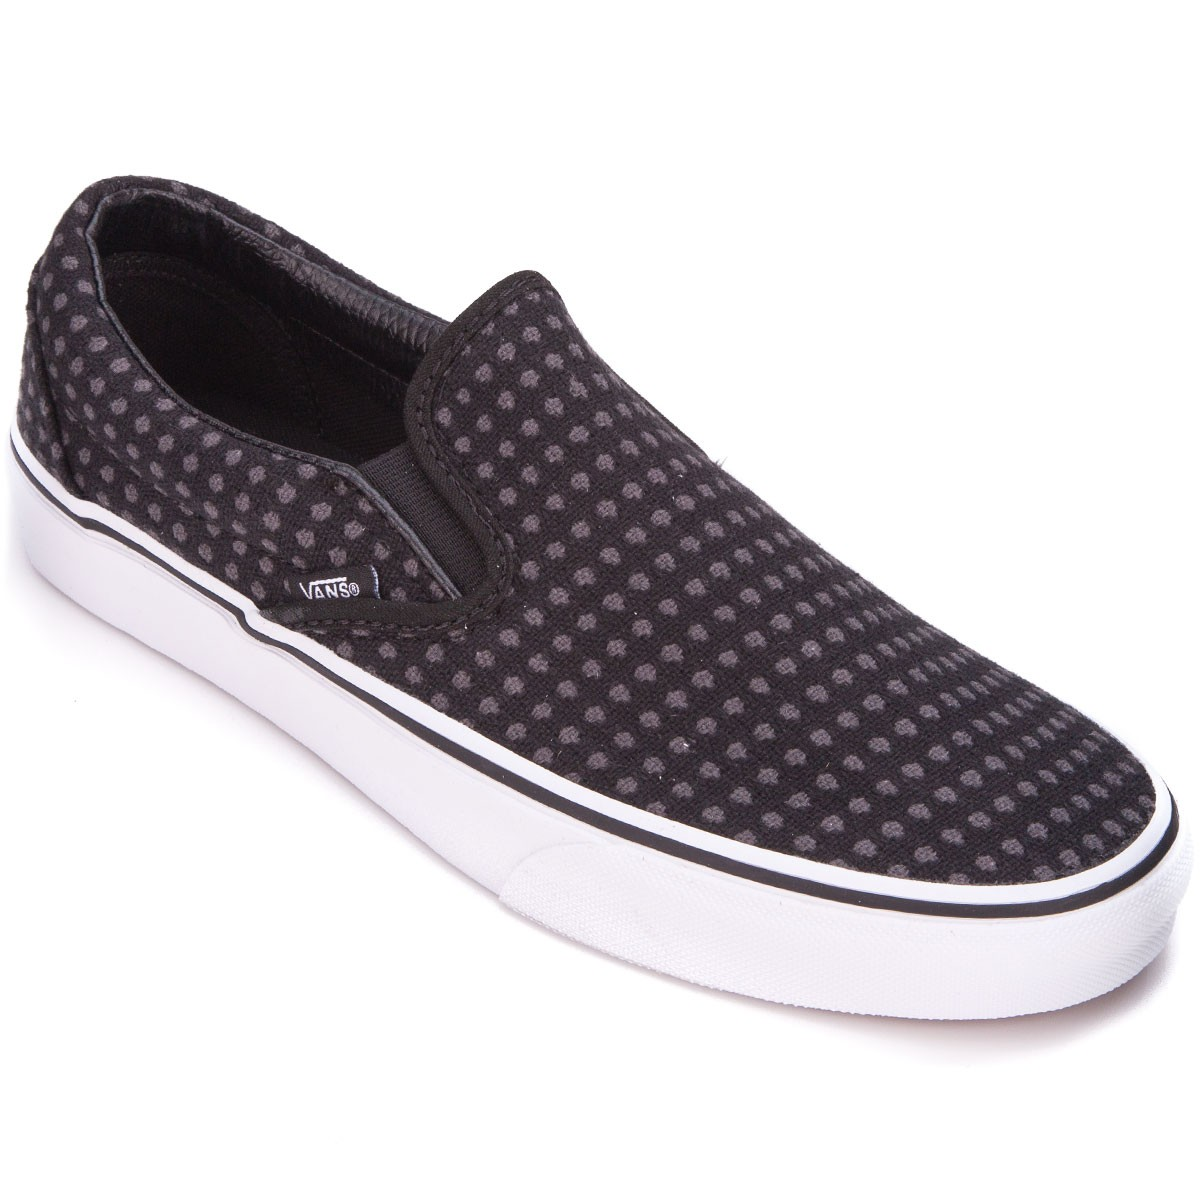 b702e548a68302 Vans Classic Slip-On Womens Shoes - Wool Dots Black White - 3.5